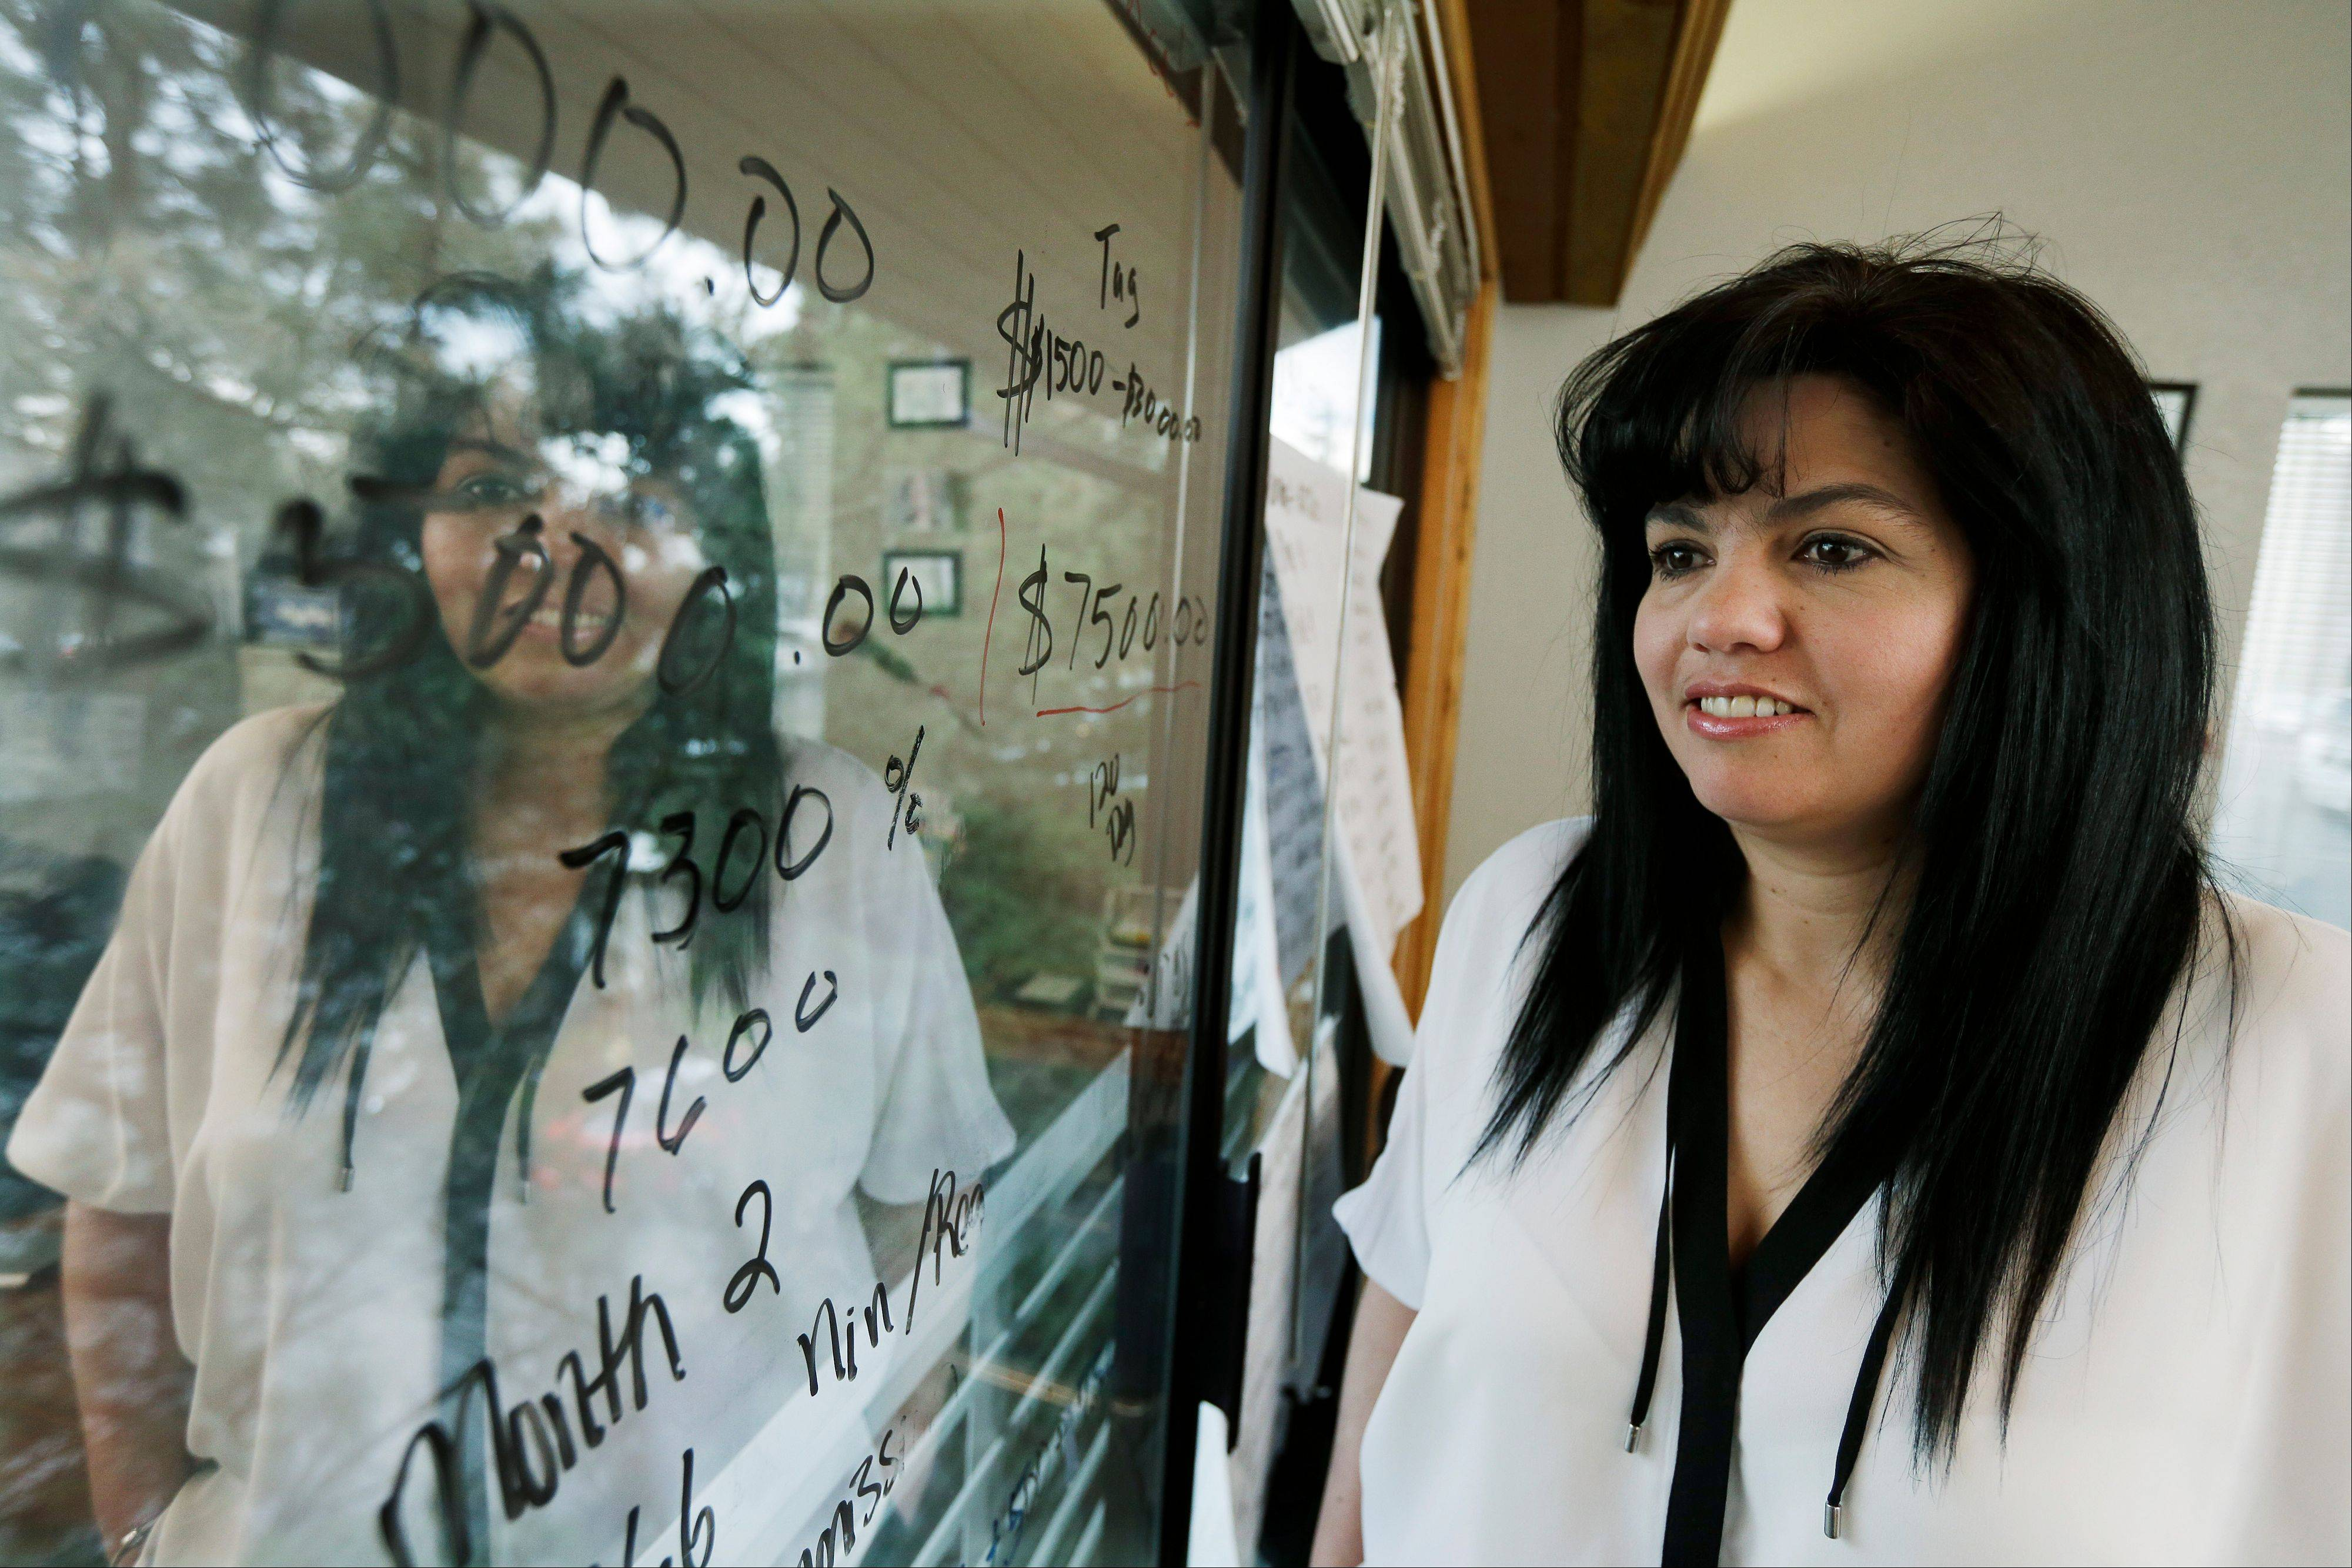 In this Monday, April 15, 2013, photo, Consuelo Gomez, of the facilities management company �Marty K� poses for a photo, in the company�s offices in Bellevue, Wash. When space on the company�s white boards is scarce in her small office, she sometimes uses the window to run the numbers of her small business.